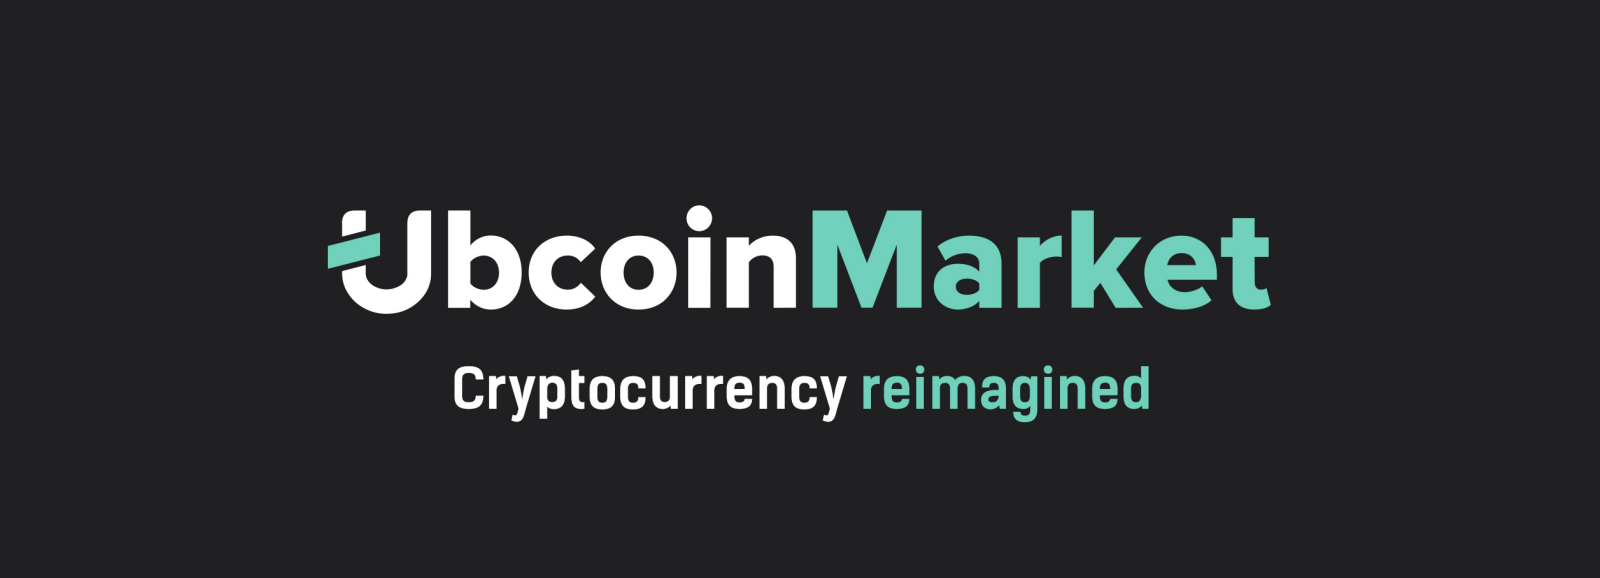 How Ubcoin Market modulates content using artificial intelligence